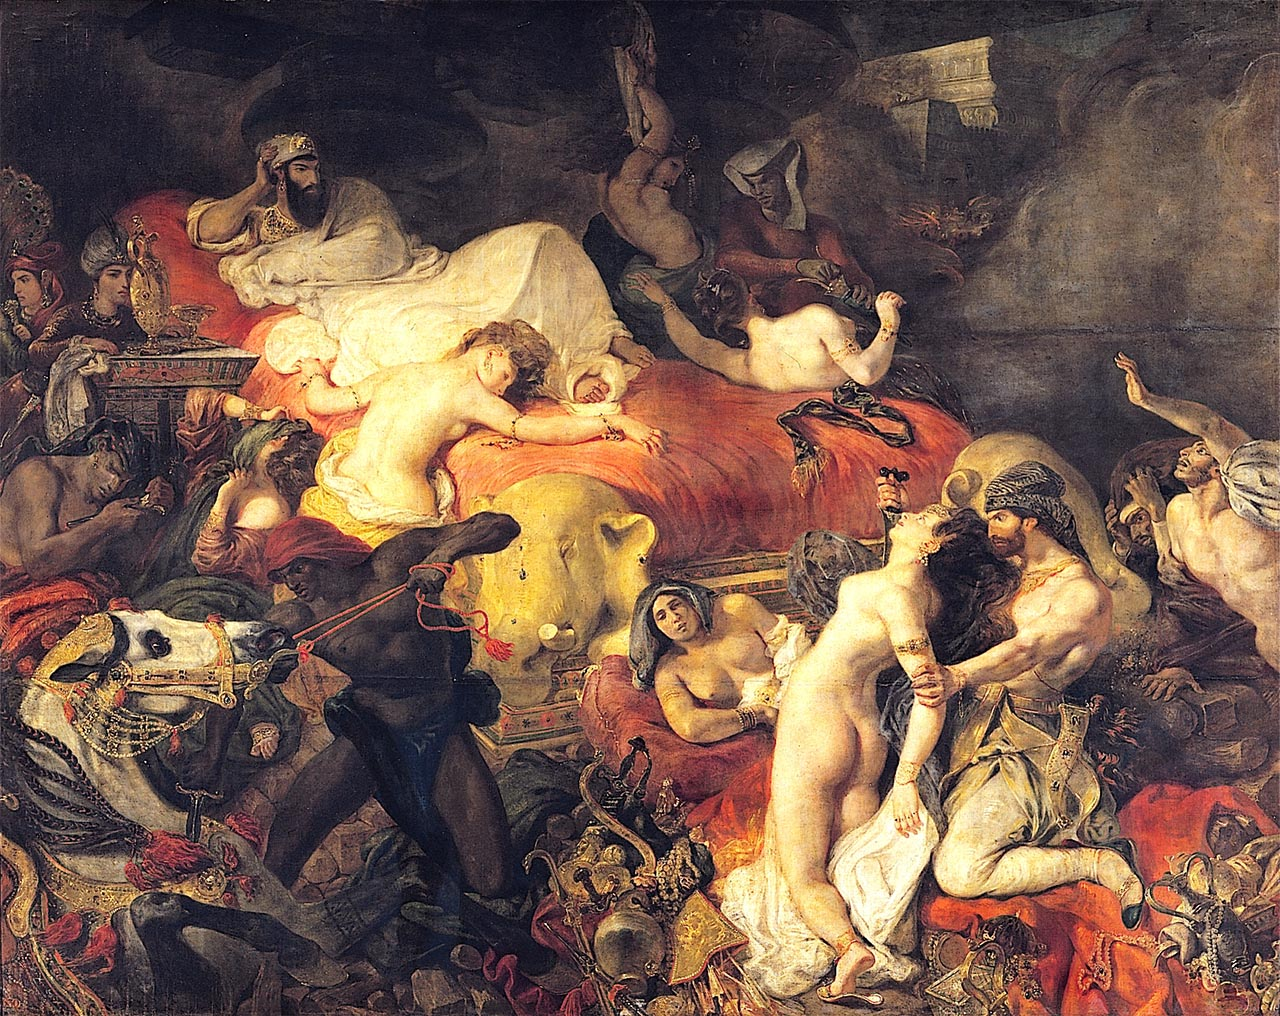 Делакруа. Смерть Сарданапала. 1828,  Delacroix, Death of Sardanapalus,